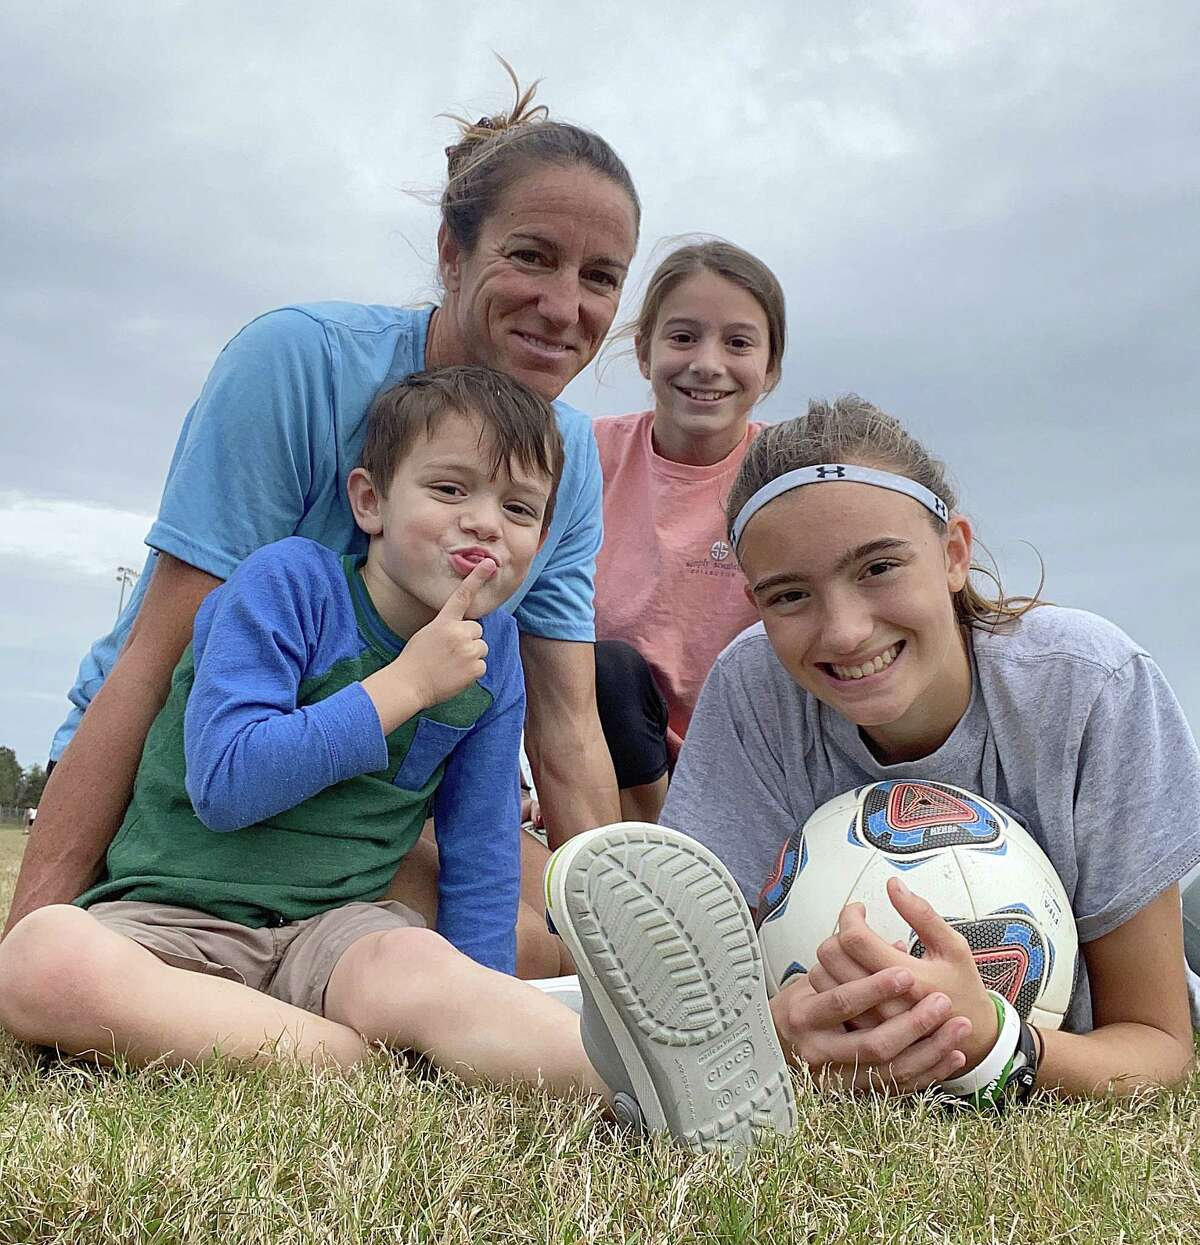 Nicole Roberts, a former US Women's National Team Player and New York State High School Girls Soccer Hall of Famer, lives with her husband in DeLand, Fla. She is pictured with Sydney, 14, Kylie, 12 and Jayce, 5. (Provided)